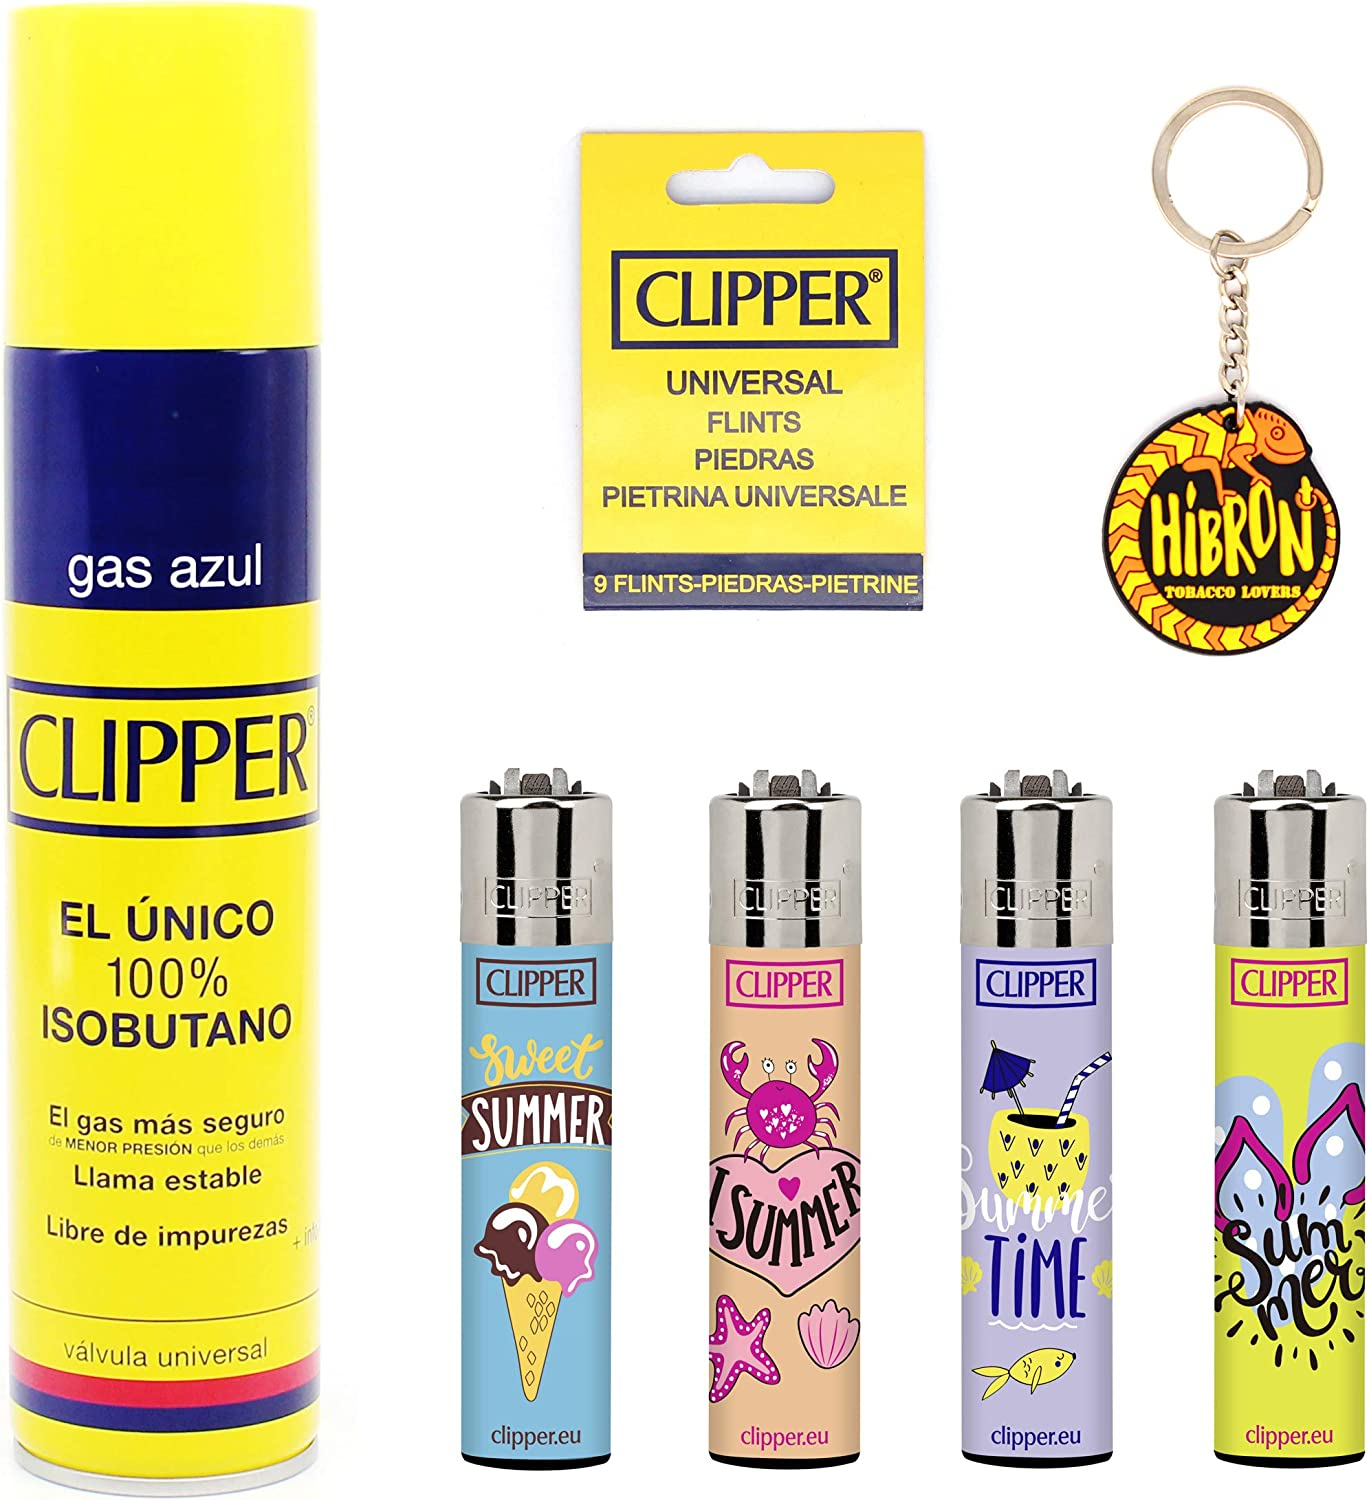 HIBRON Clipper 4 Mecheros Encendedores Diversos Surtidos Bonitos, 1 Carga Gas Encendedor Clipper 300 Ml,9uds De Piedra Clipper Y 1 Llavero Gratis 1-10003-10: Amazon ...